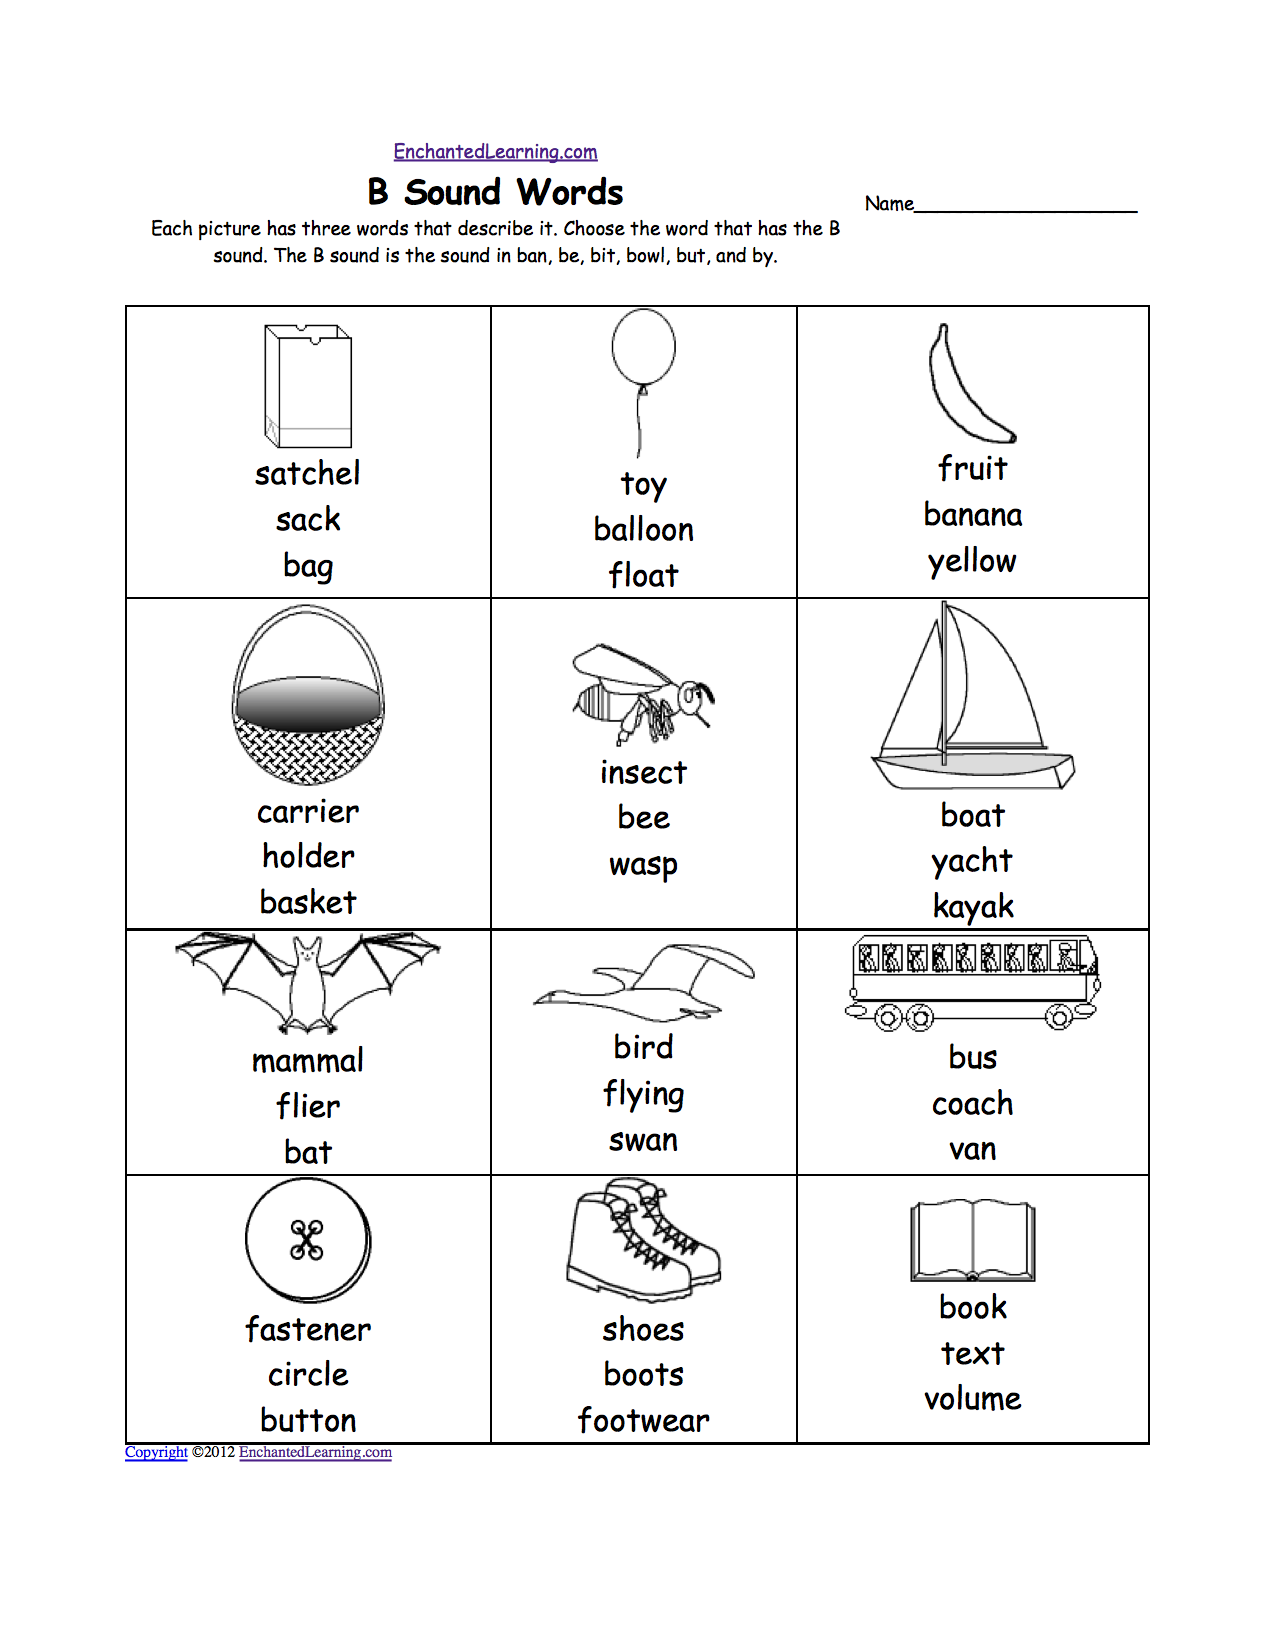 Weirdmailus  Marvelous Phonics Worksheets Multiple Choice Worksheets To Print  With Licious Quotbquot Sound Phonics Worksheet Multiple Choice Each Picture Has Three Words That Describe It Choose The Word That Has A Quotbquot Sound The Quotbquot Sound Is The Sound  With Cool Fact Family Worksheets For Second Grade Also Me Gusta Worksheets In Addition Thrass Worksheets And Multiplication And Division Mixed Worksheets As Well As Paragraphing Worksheet Additionally Multiplication Worksheets For Free From Enchantedlearningcom With Weirdmailus  Licious Phonics Worksheets Multiple Choice Worksheets To Print  With Cool Quotbquot Sound Phonics Worksheet Multiple Choice Each Picture Has Three Words That Describe It Choose The Word That Has A Quotbquot Sound The Quotbquot Sound Is The Sound  And Marvelous Fact Family Worksheets For Second Grade Also Me Gusta Worksheets In Addition Thrass Worksheets From Enchantedlearningcom